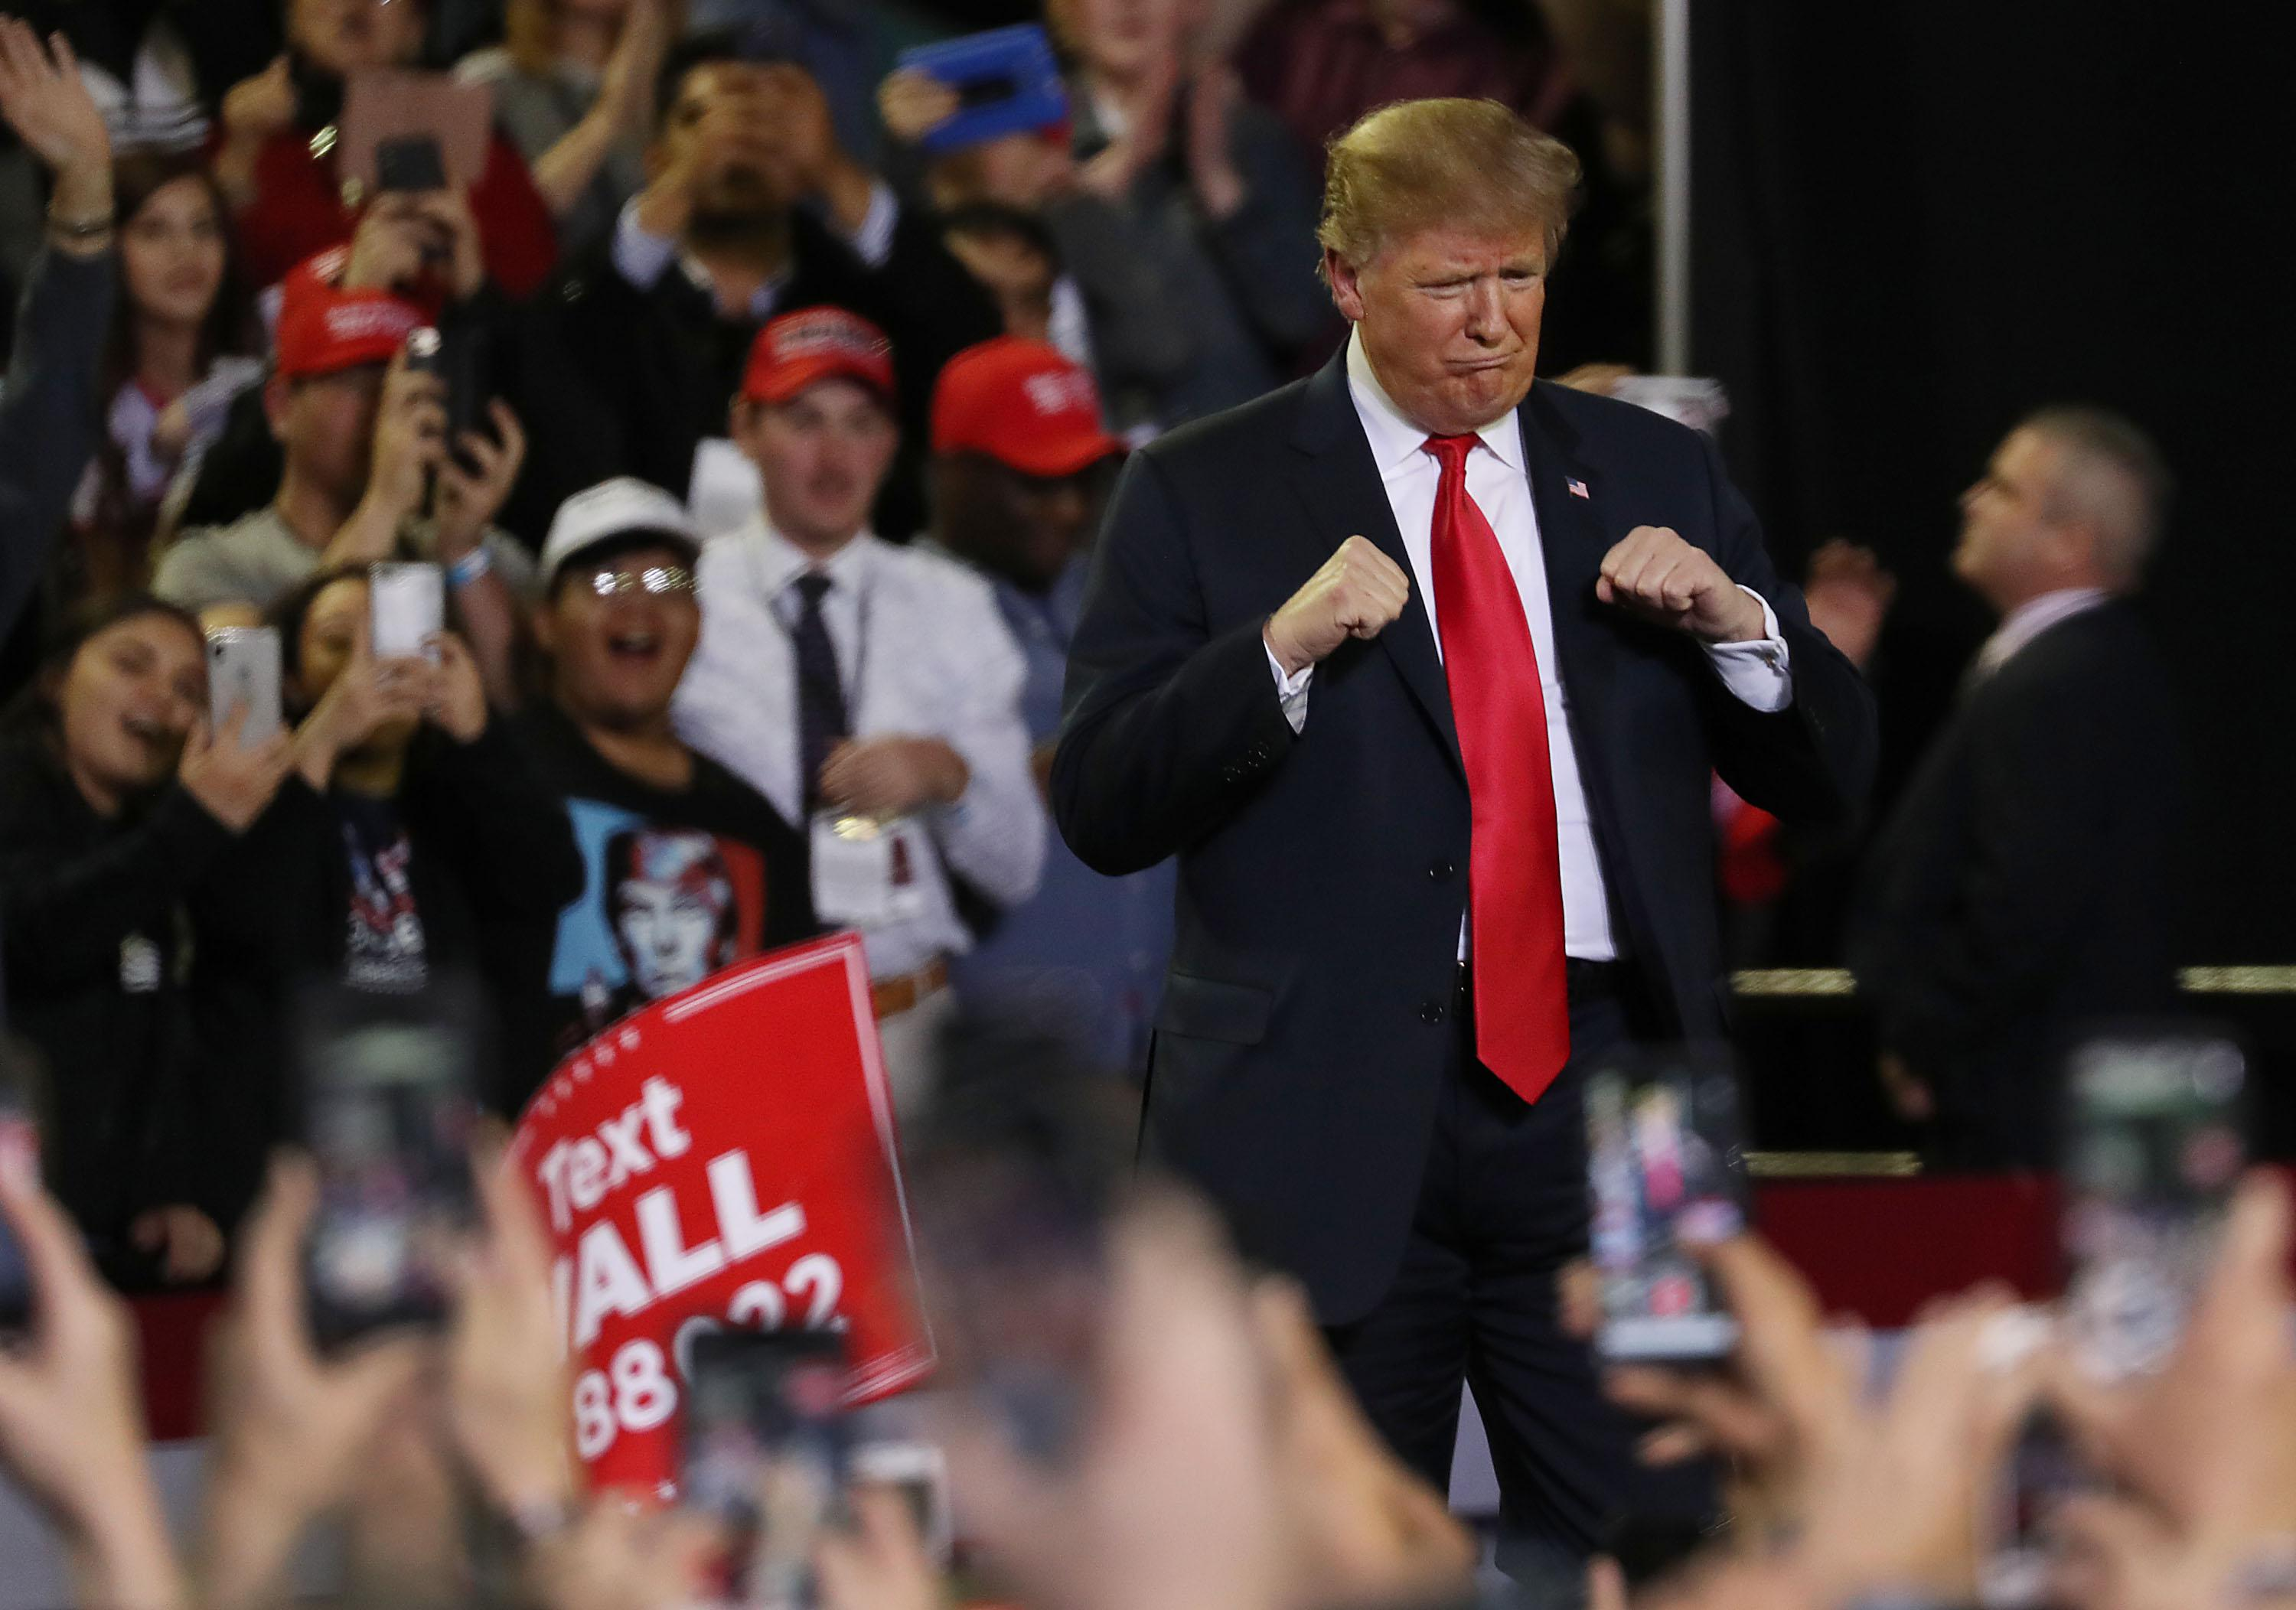 President Trump attends a rally at the El Paso County Coliseum on February 11, 2019 in El Paso, Texas.